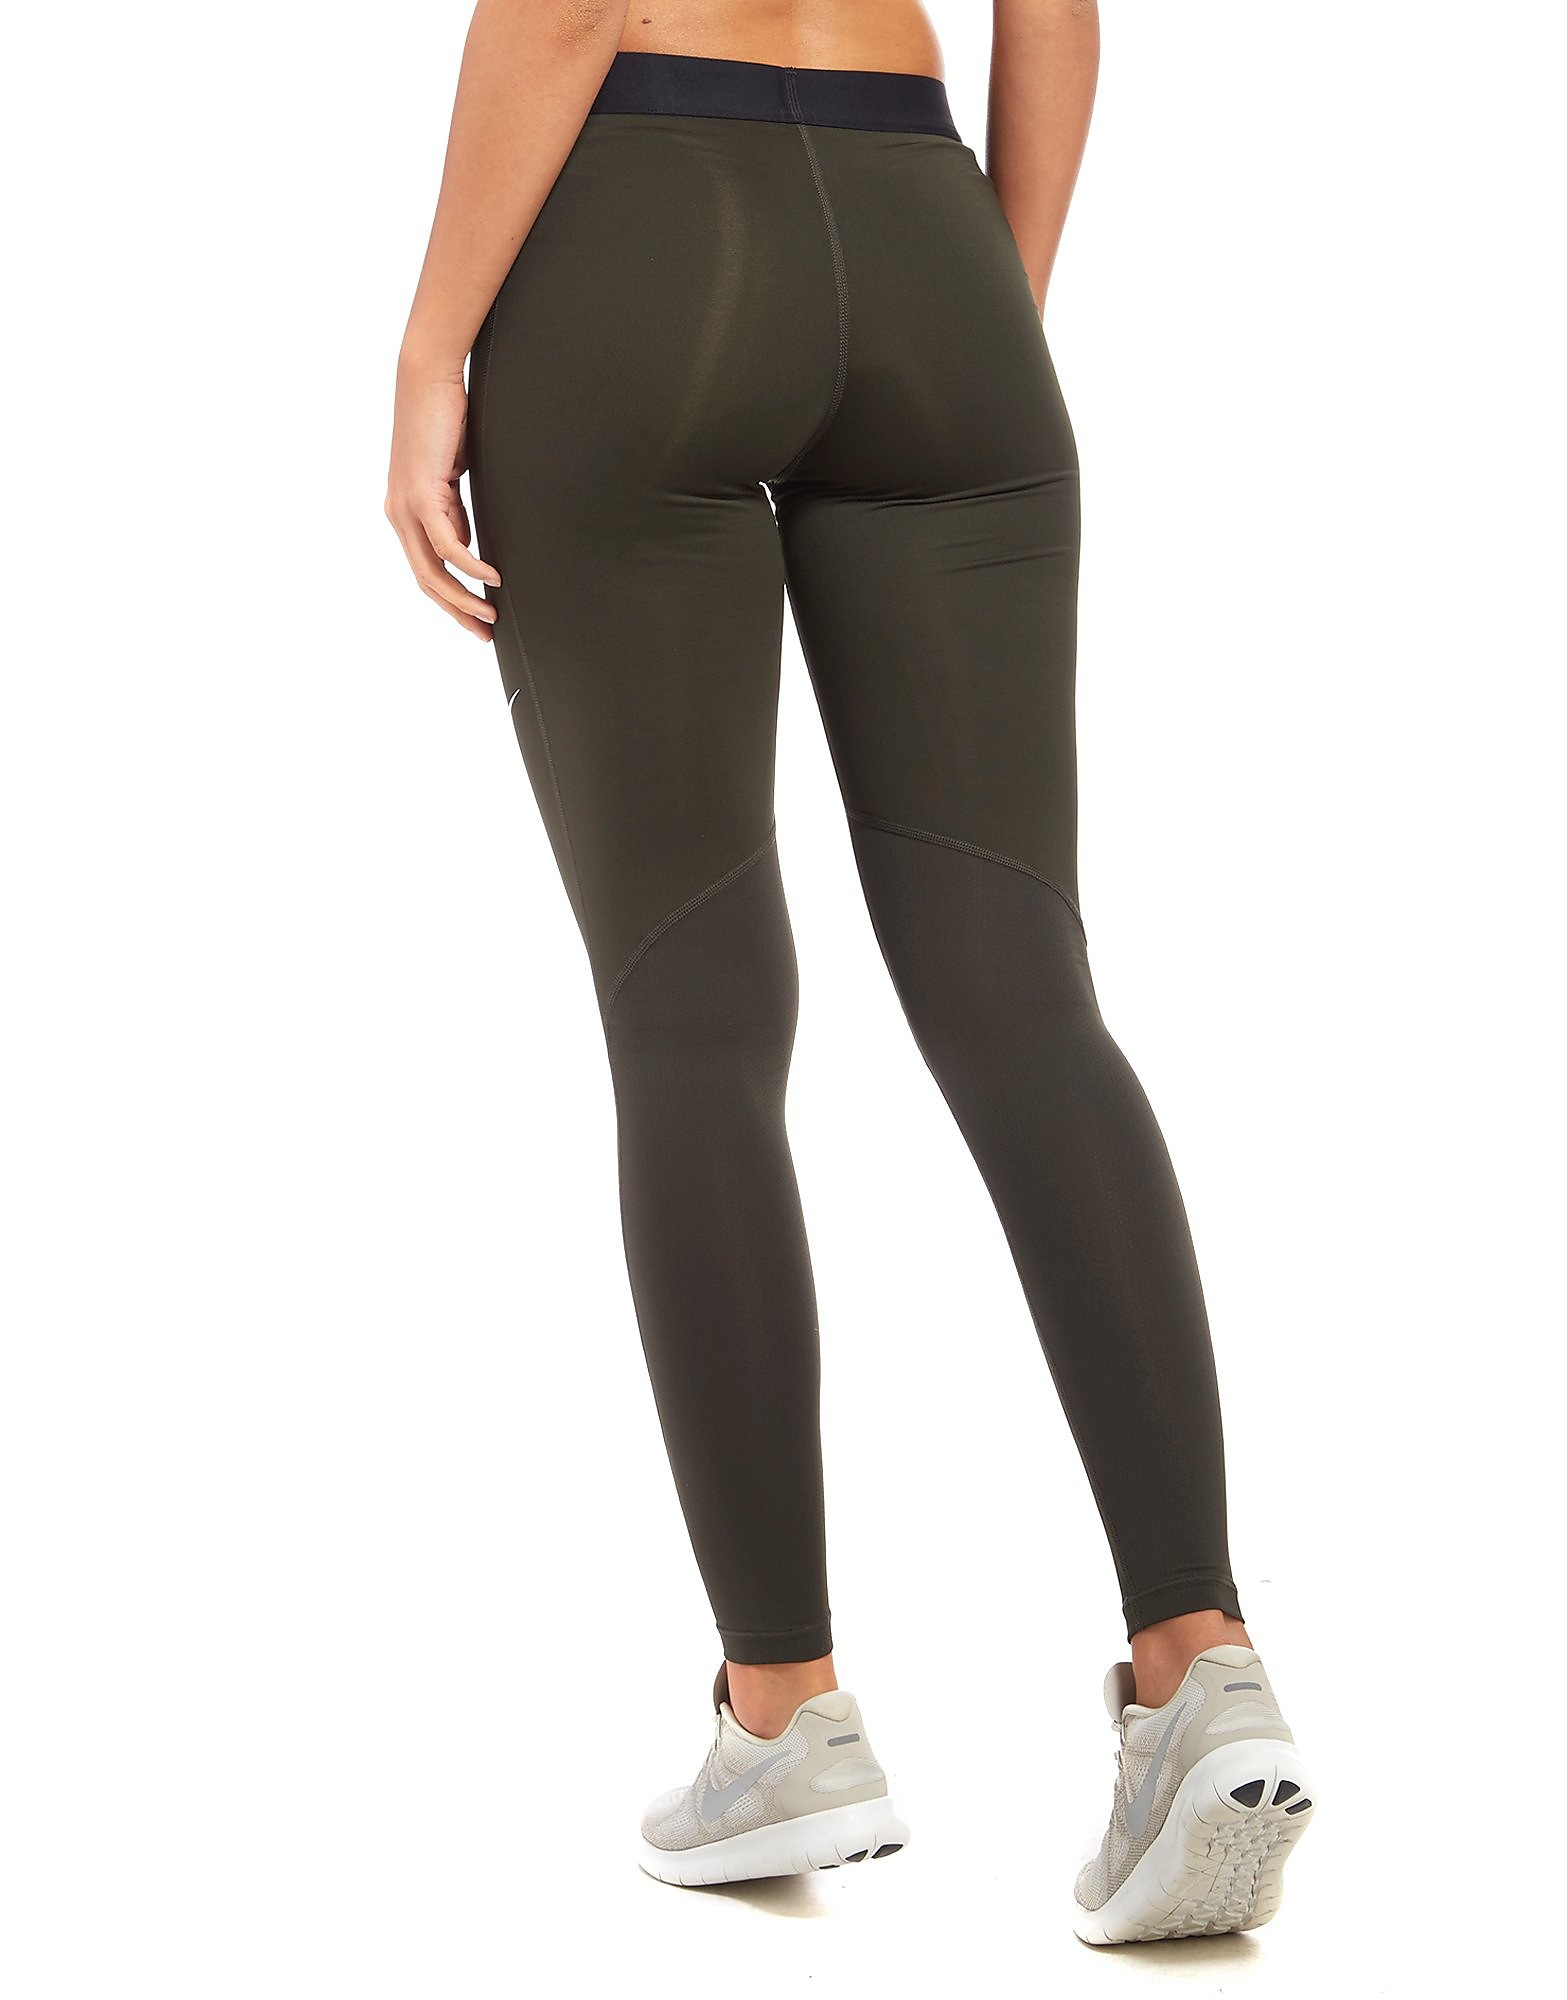 Nike Pro Tight Leggings